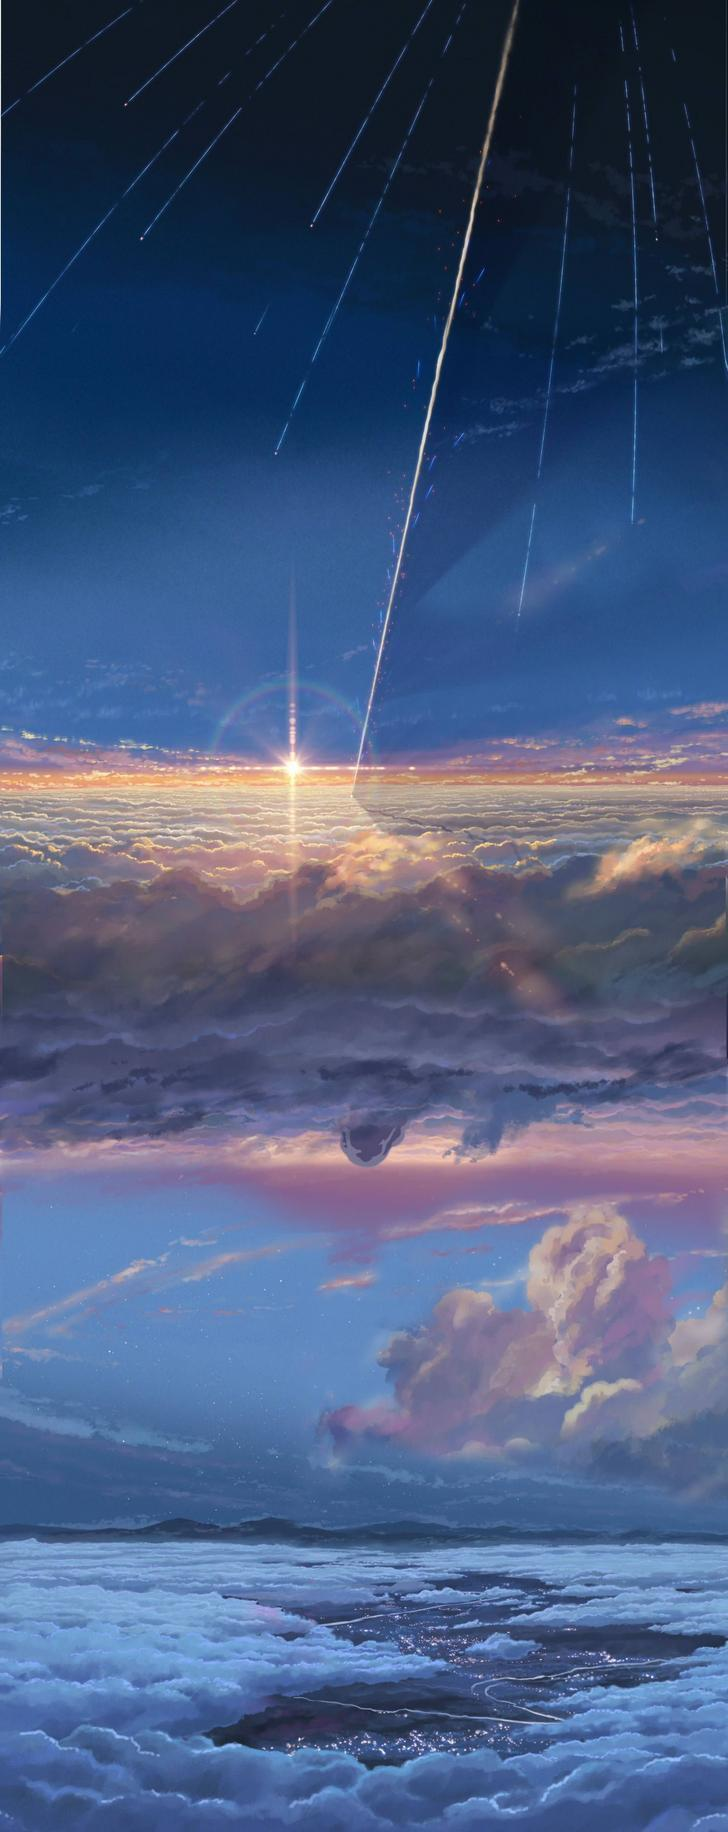 The amazing digital art Kimi no na wa wallpaper, Kimi no